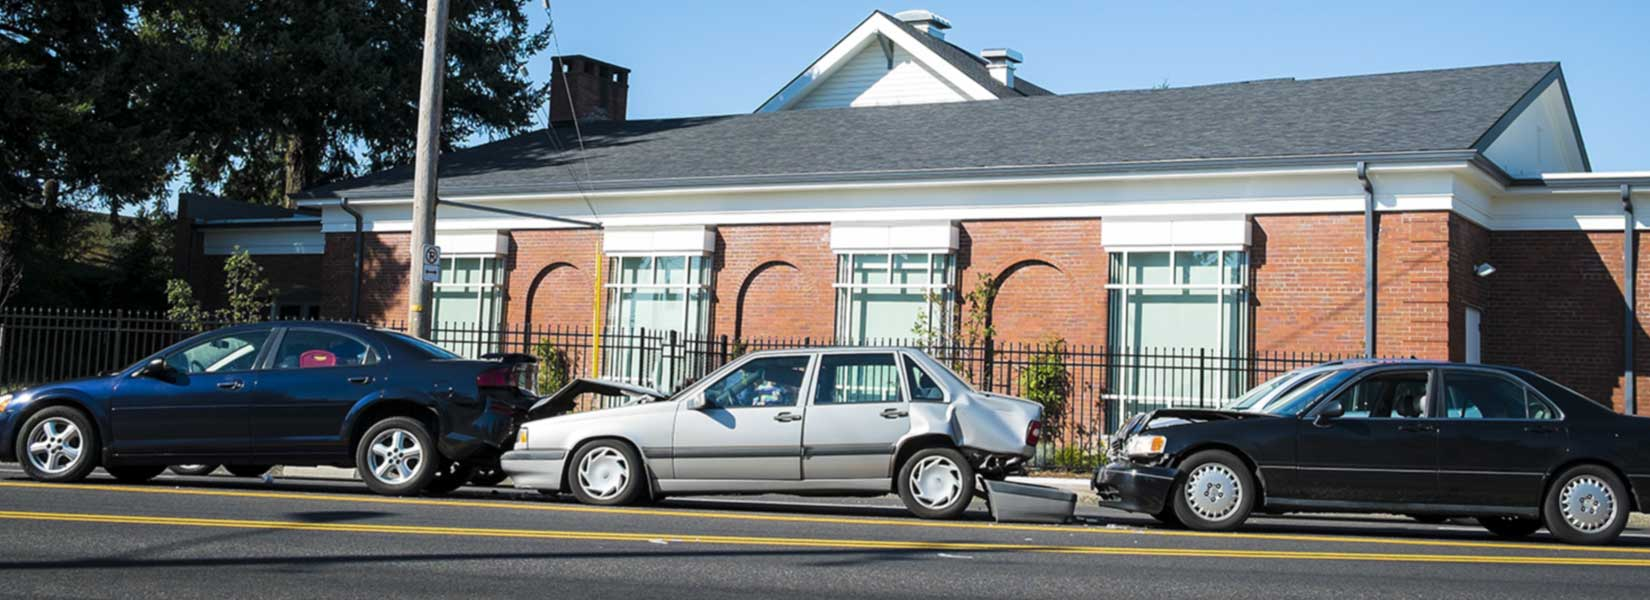 Determining Fault in a Multi-Car Accident Avondale Car Accident Lawyer